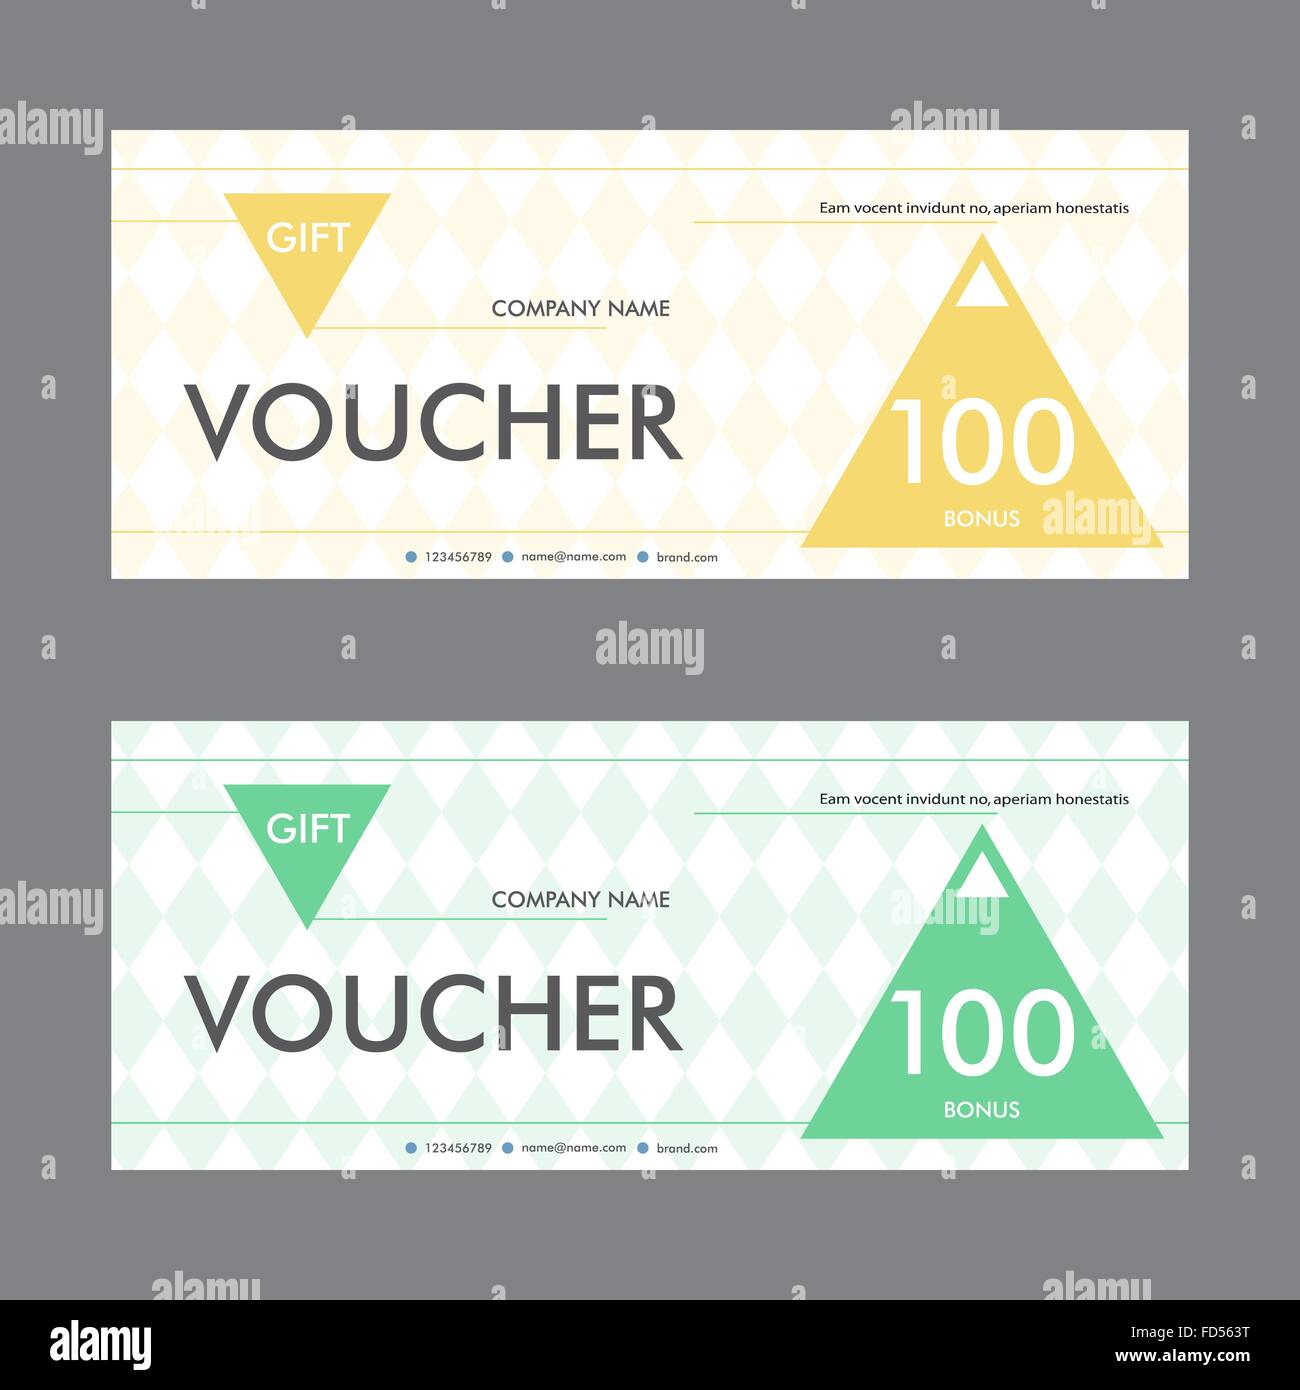 Template design gift voucher with triangular elements beautiful template design gift voucher with triangular elements beautiful design certificate yelopaper Gallery